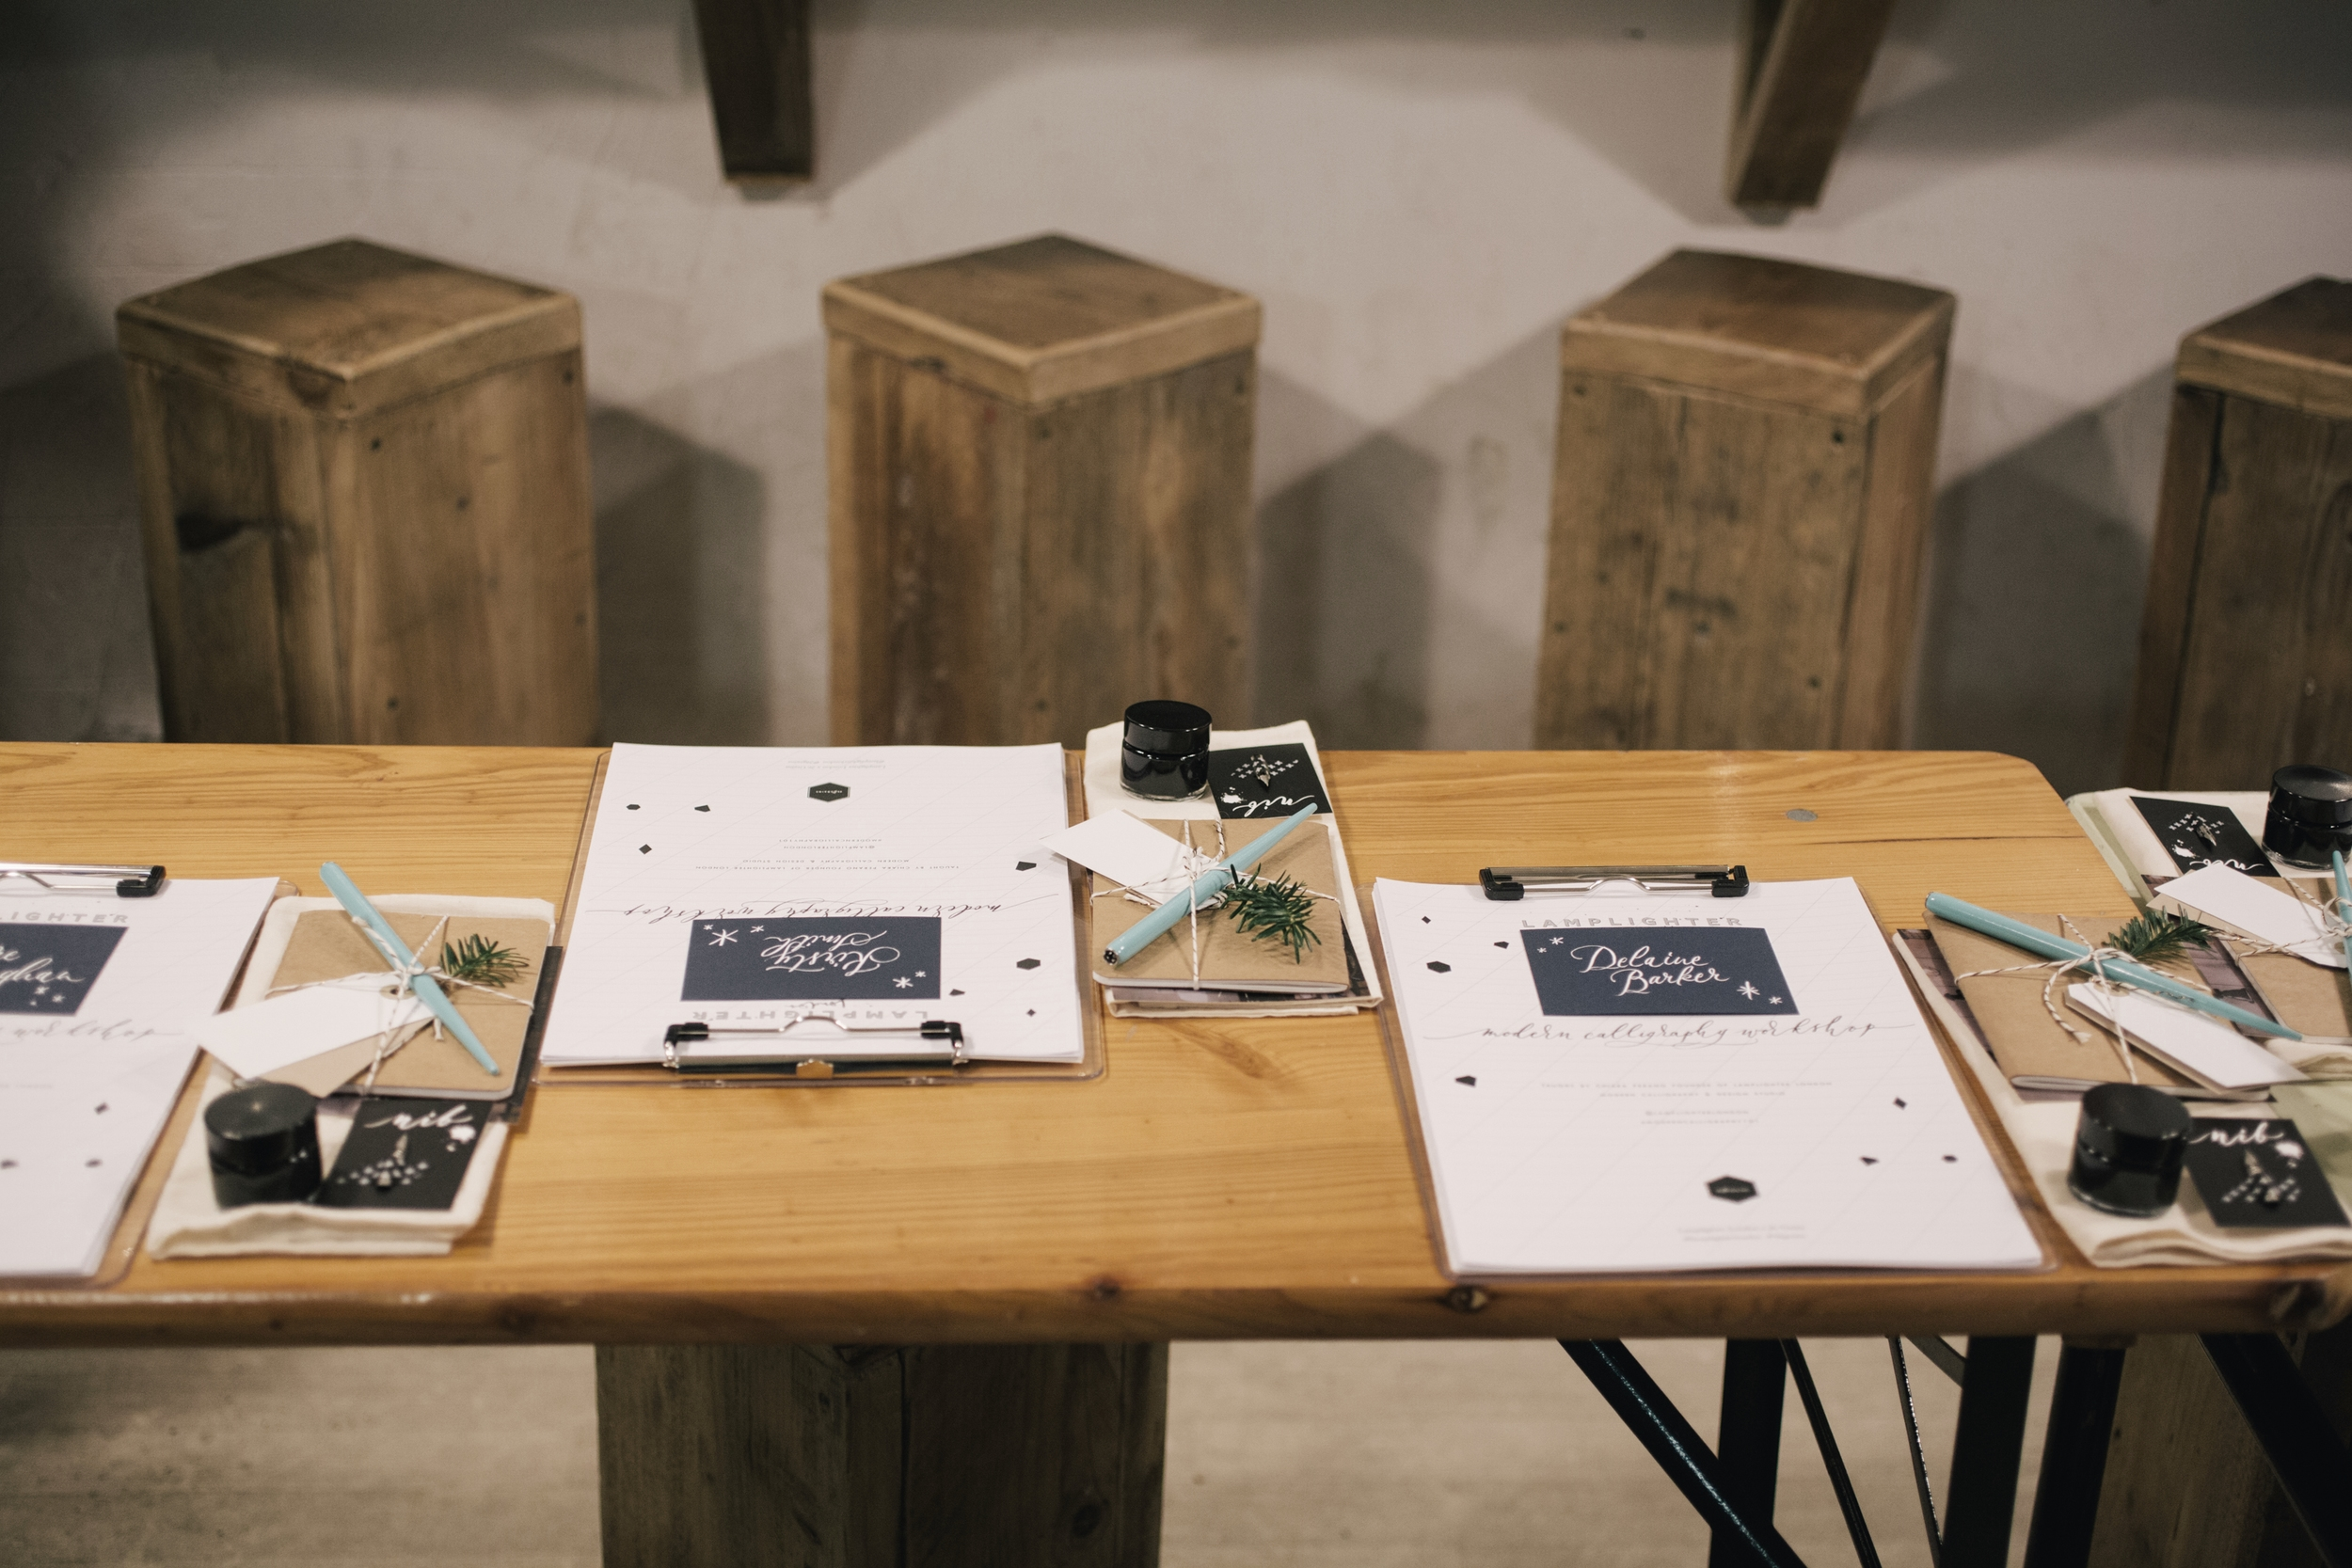 Modern Calligraphy Workshops by Lamplighter London